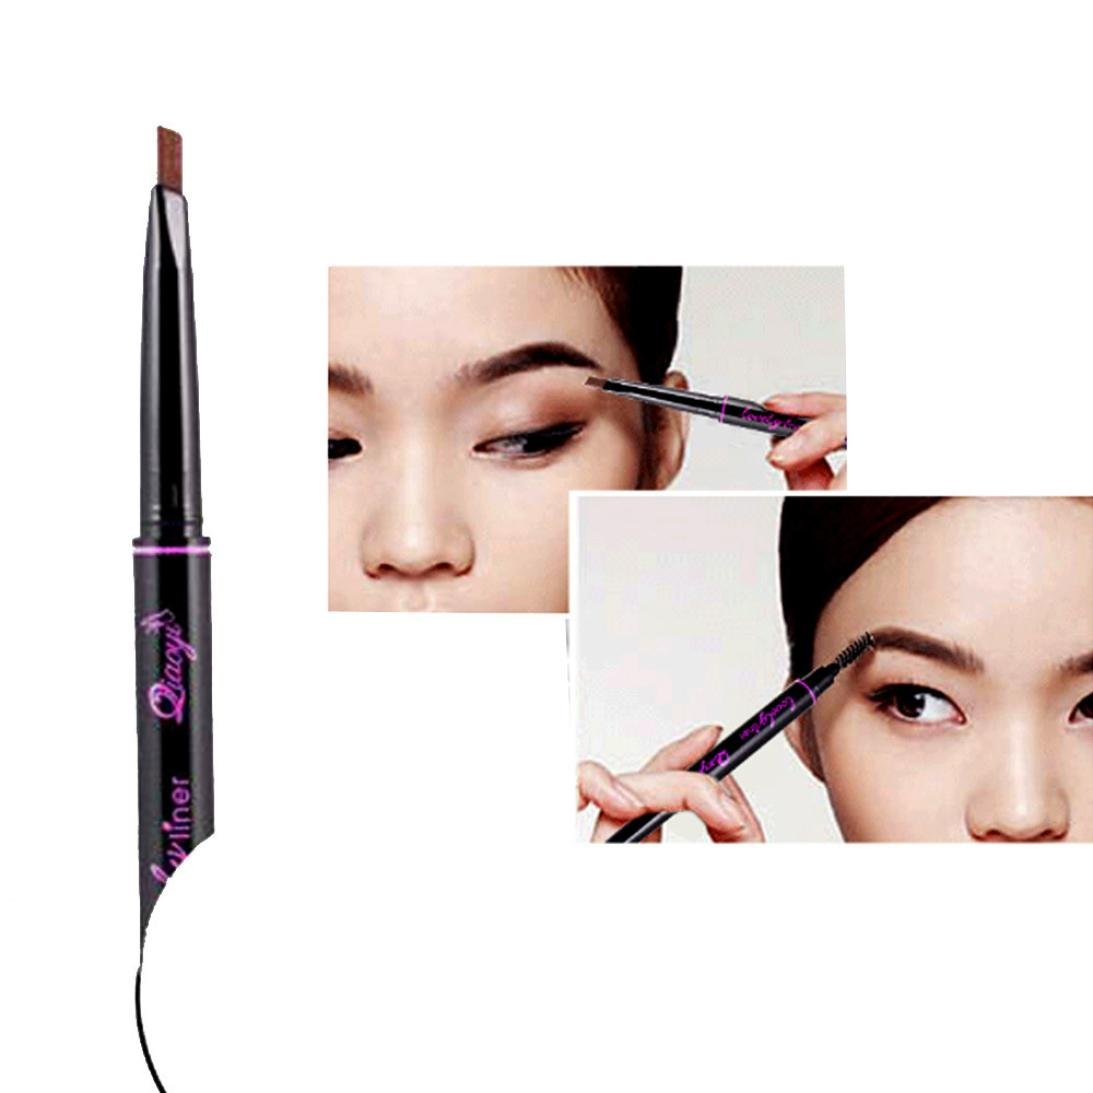 Amazon.com : CYCTECH Double-Headed Waterproof Eye Brow Eyeliner Eyebrow Pen Pencil With Brush Makeup Cosmetic Tool (Light Coffee) : Beauty